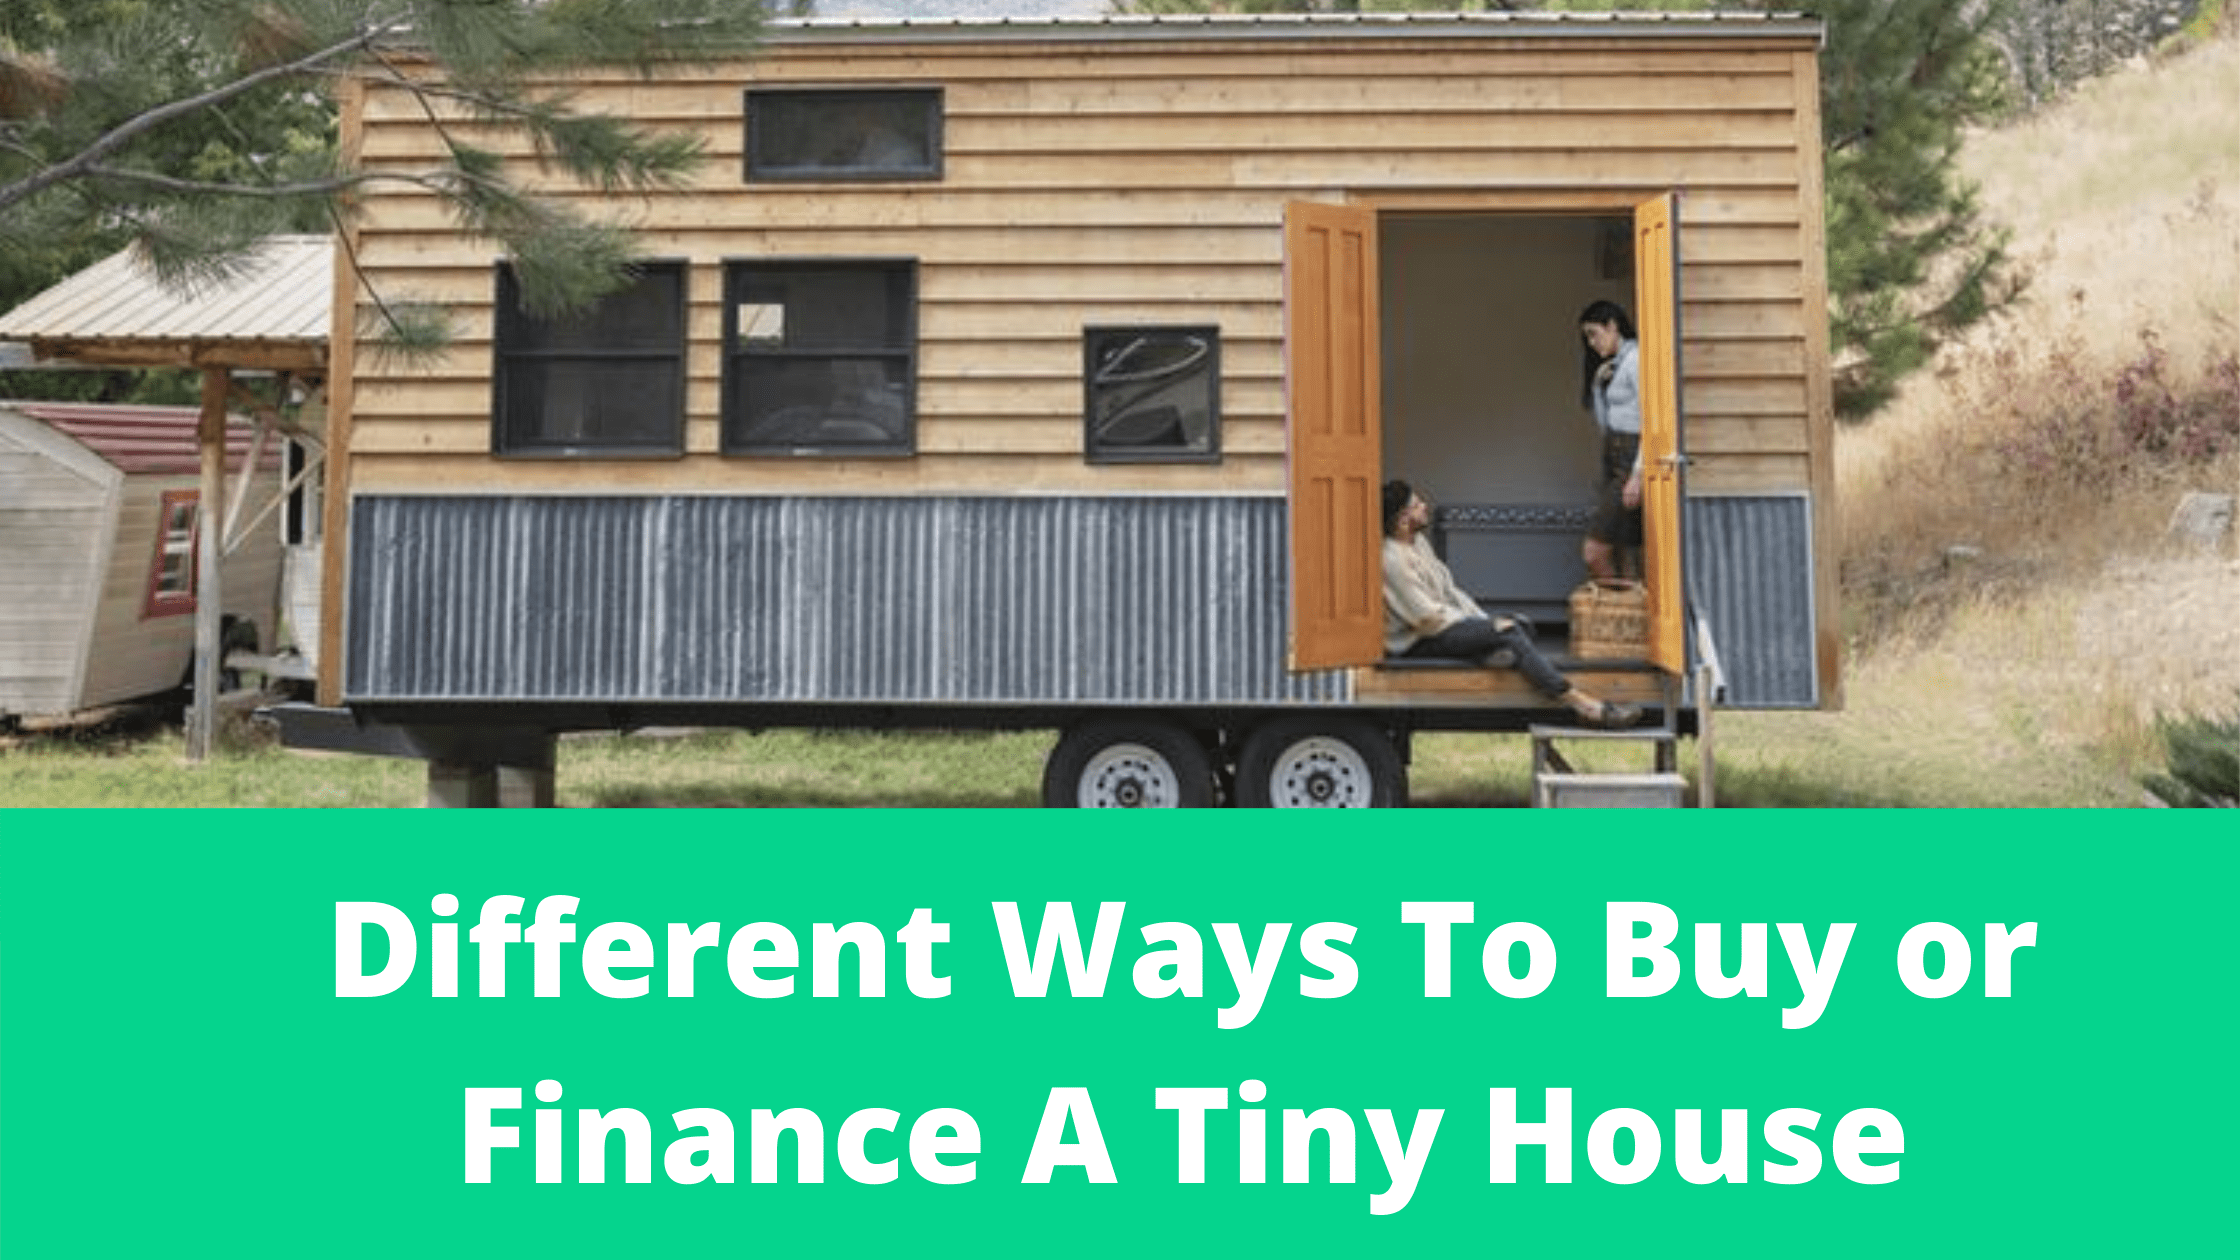 How To Buy A Tiny House With Land